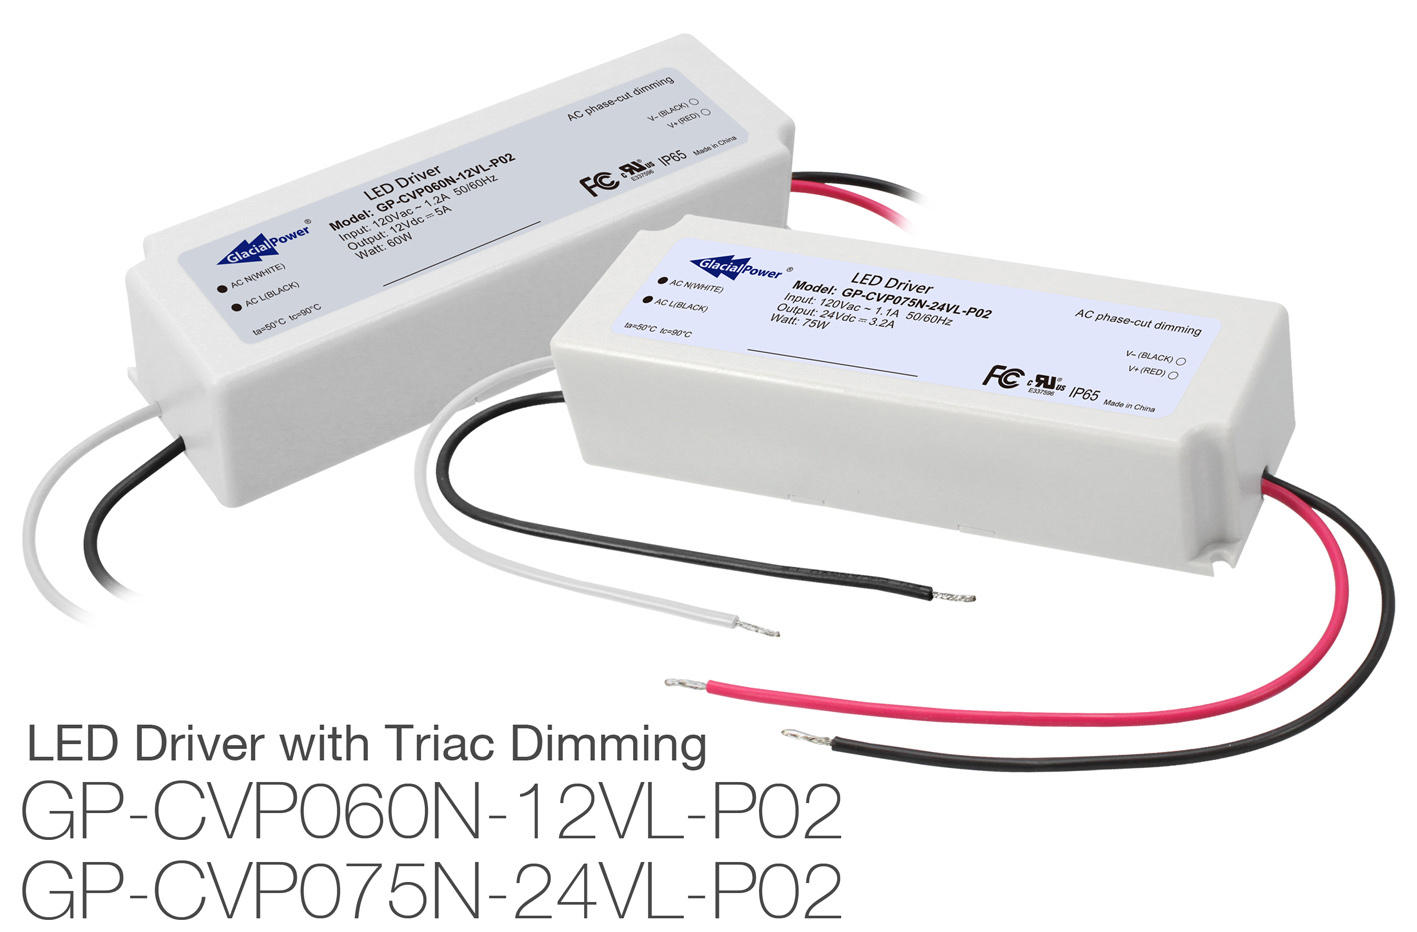 GlacialPower Launches GP-CVP060N-12VL and GP-CVP075N-24VL LED Constant Voltage TRIAC Dimming Drivers for Low Voltage Areas